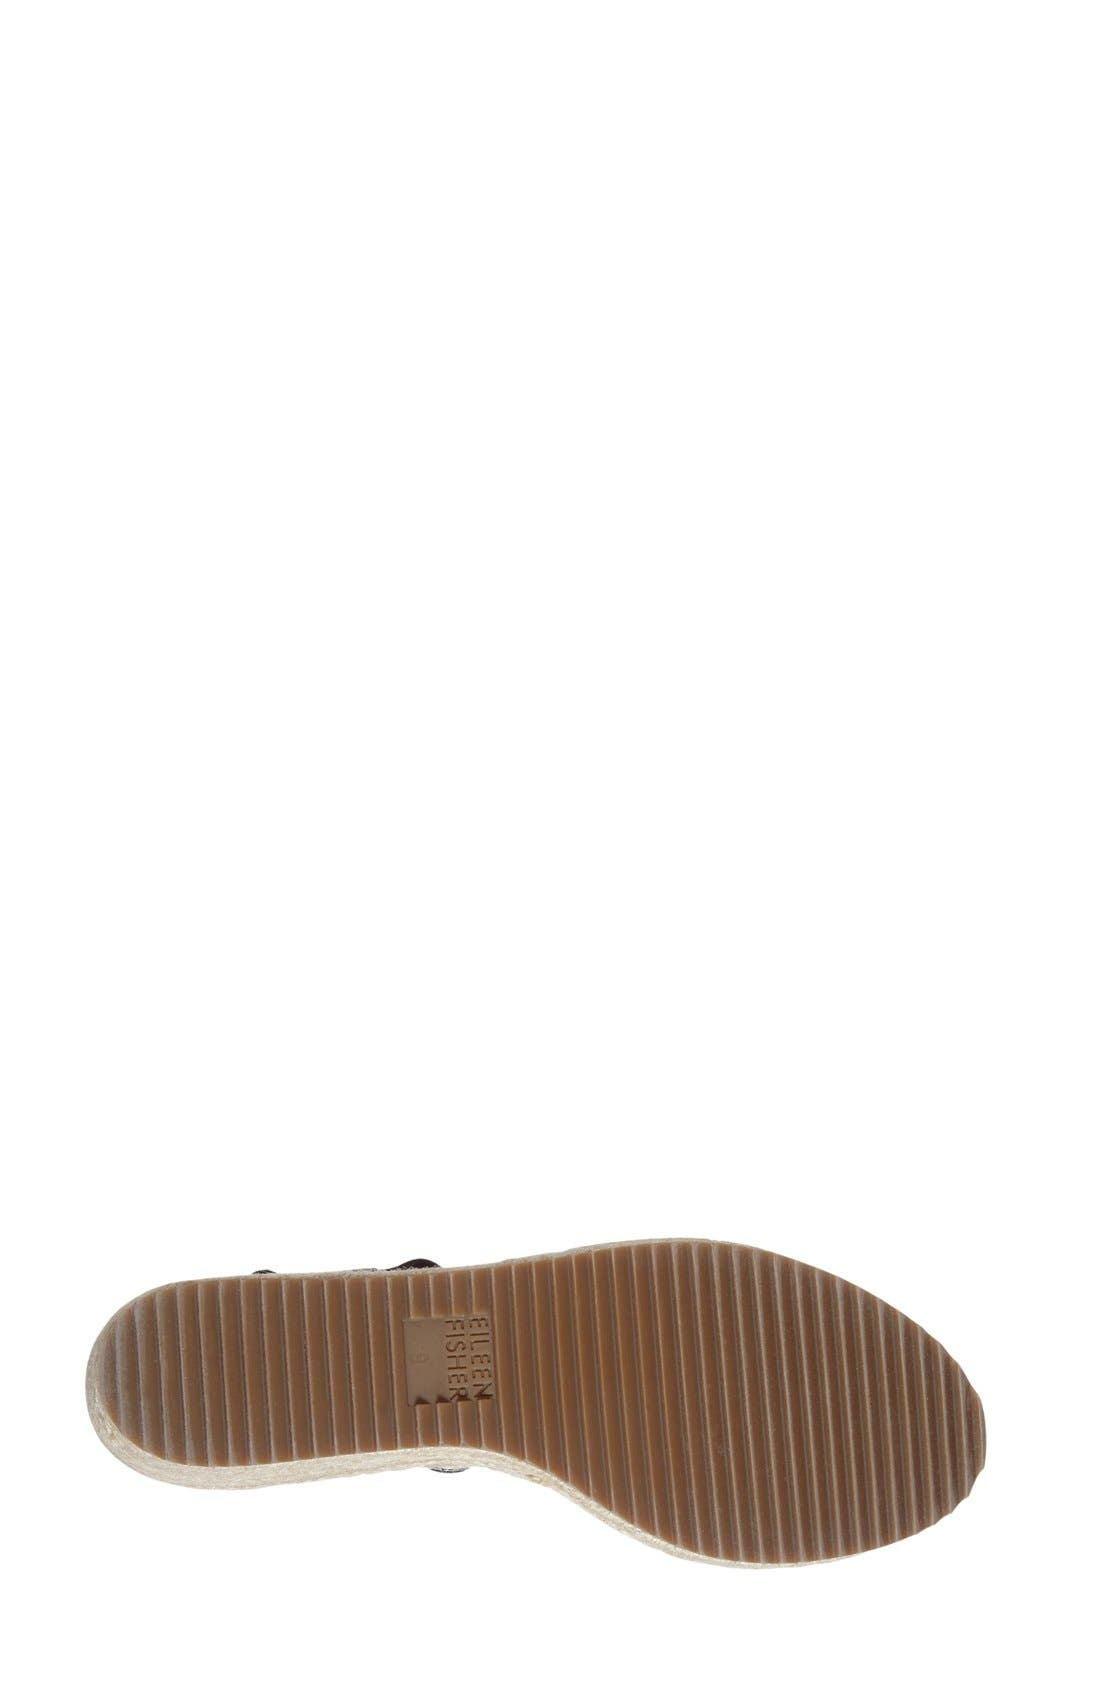 'Willow' Espadrille Wedge Sandal,                             Alternate thumbnail 4, color,                             001